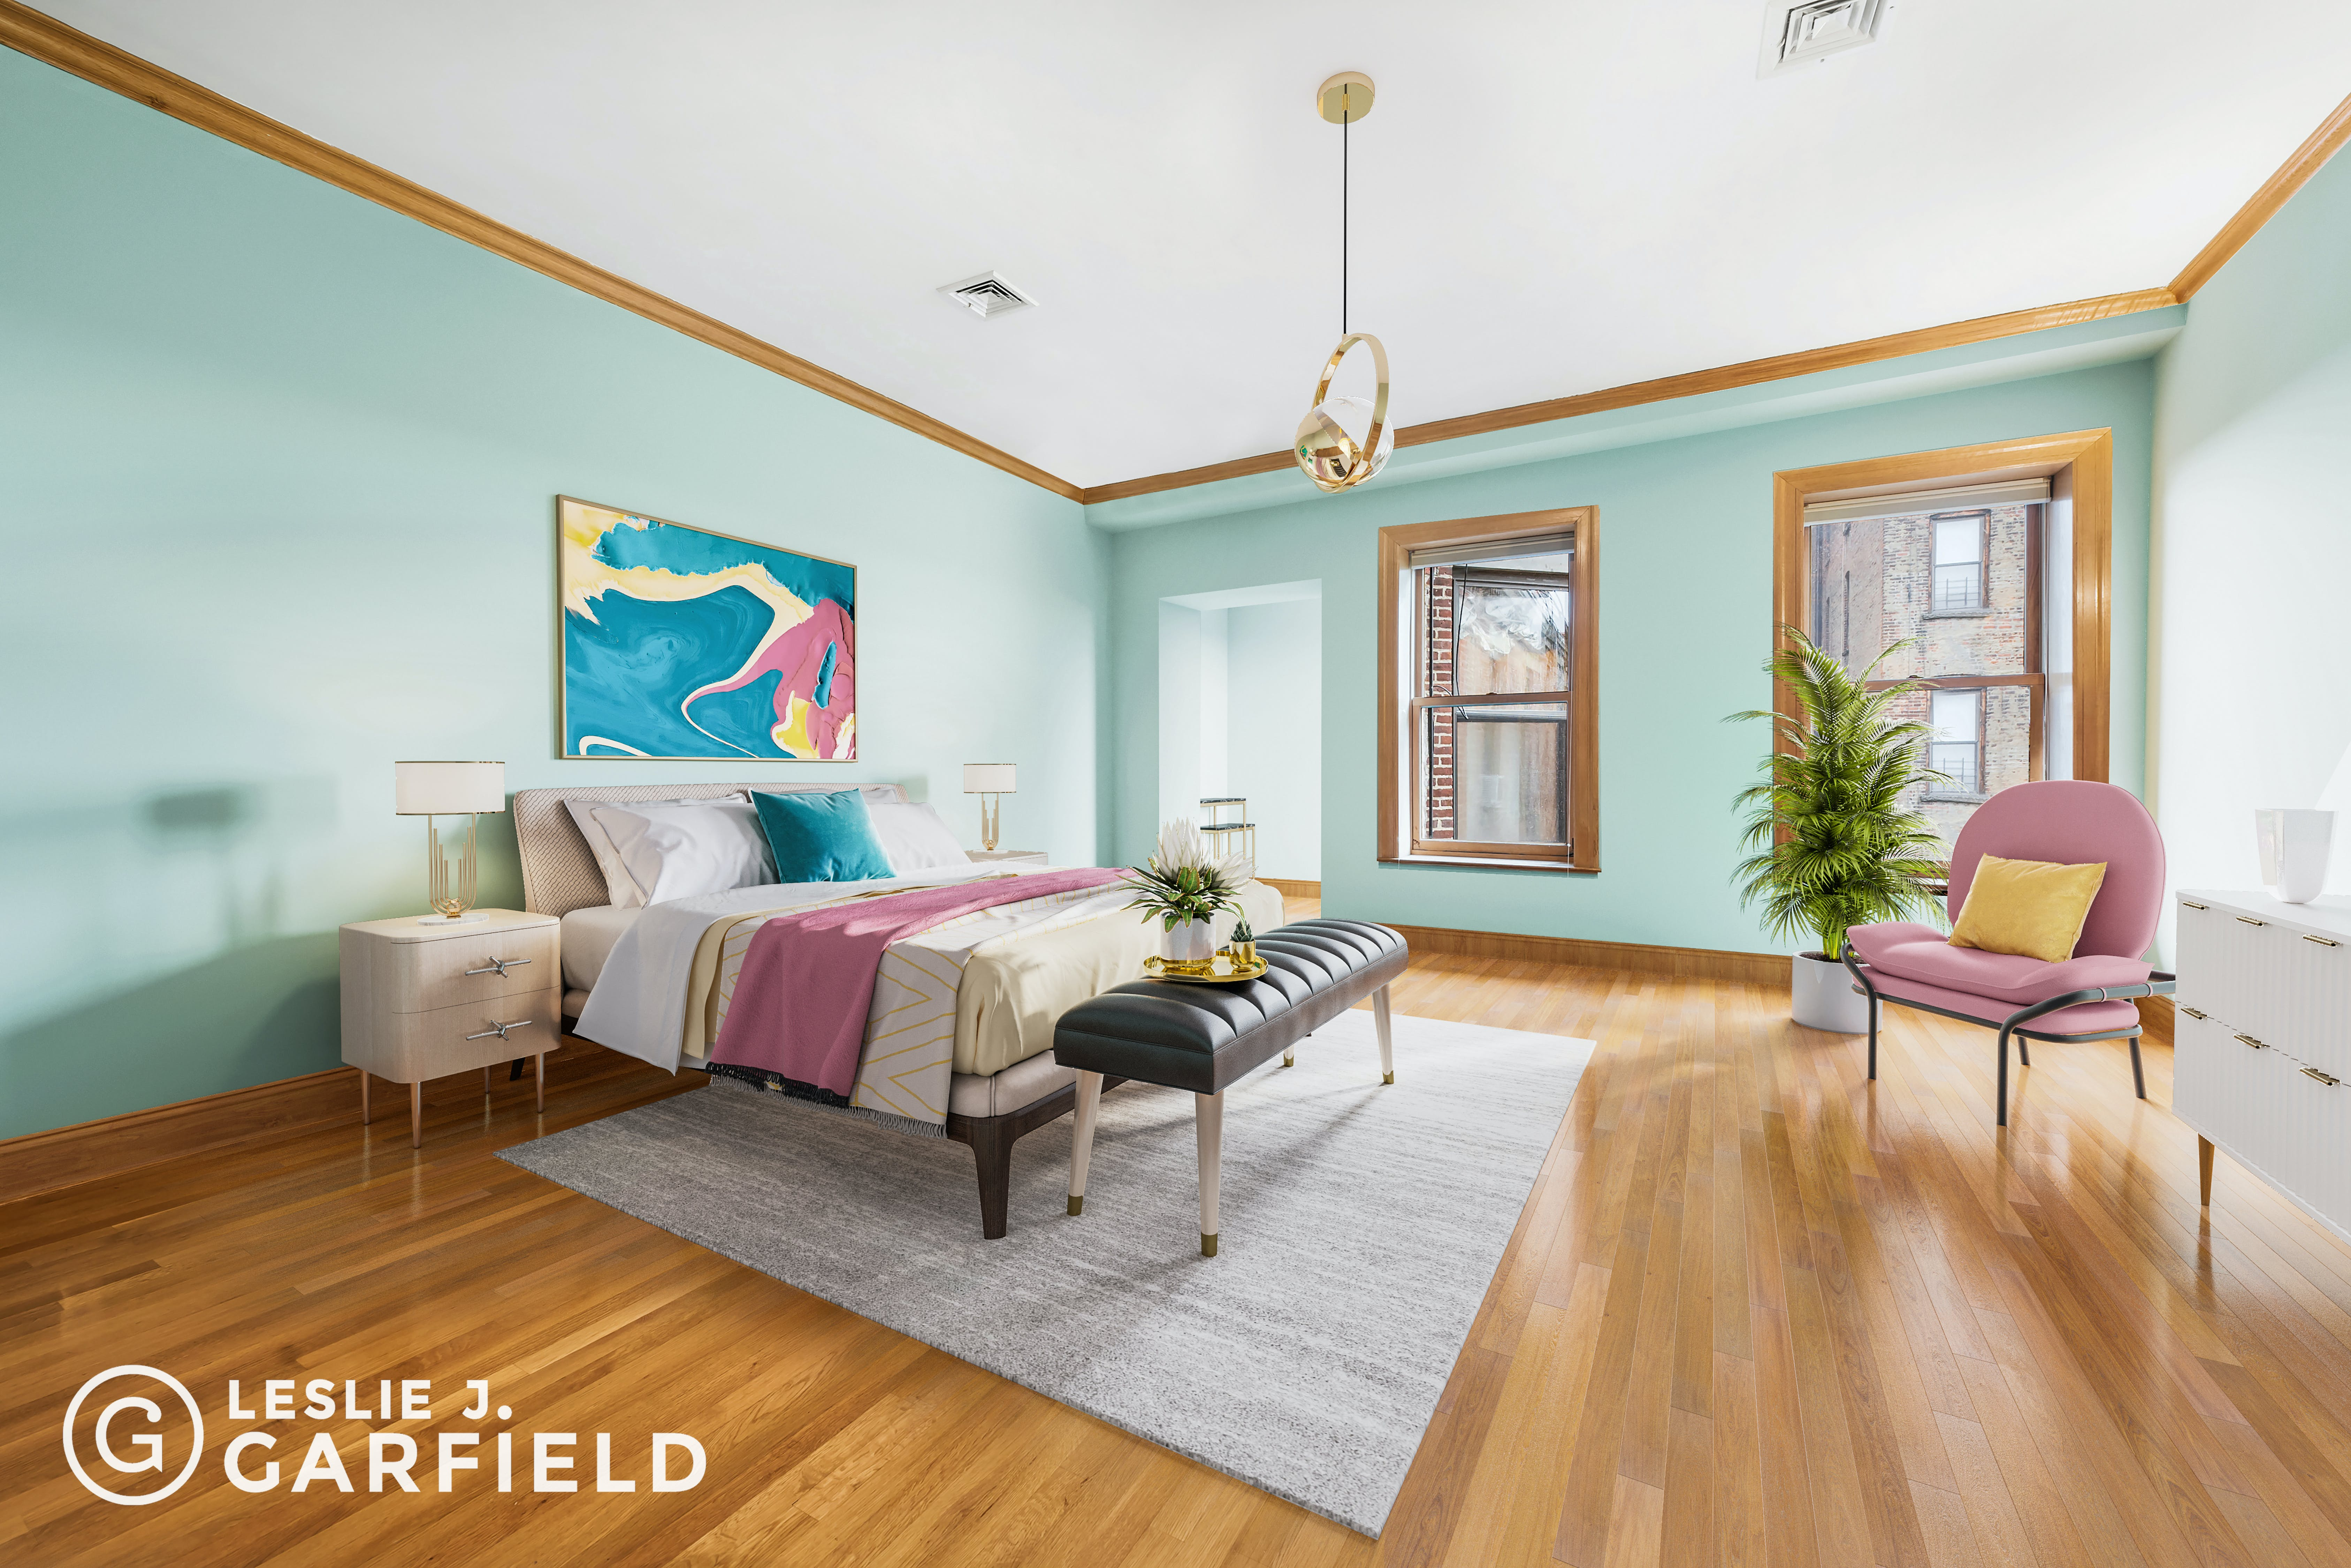 2 West 123rd Street - 1dae02eb-dd72-426b-826d-0ece75c02207 - New York City Townhouse Real Estate